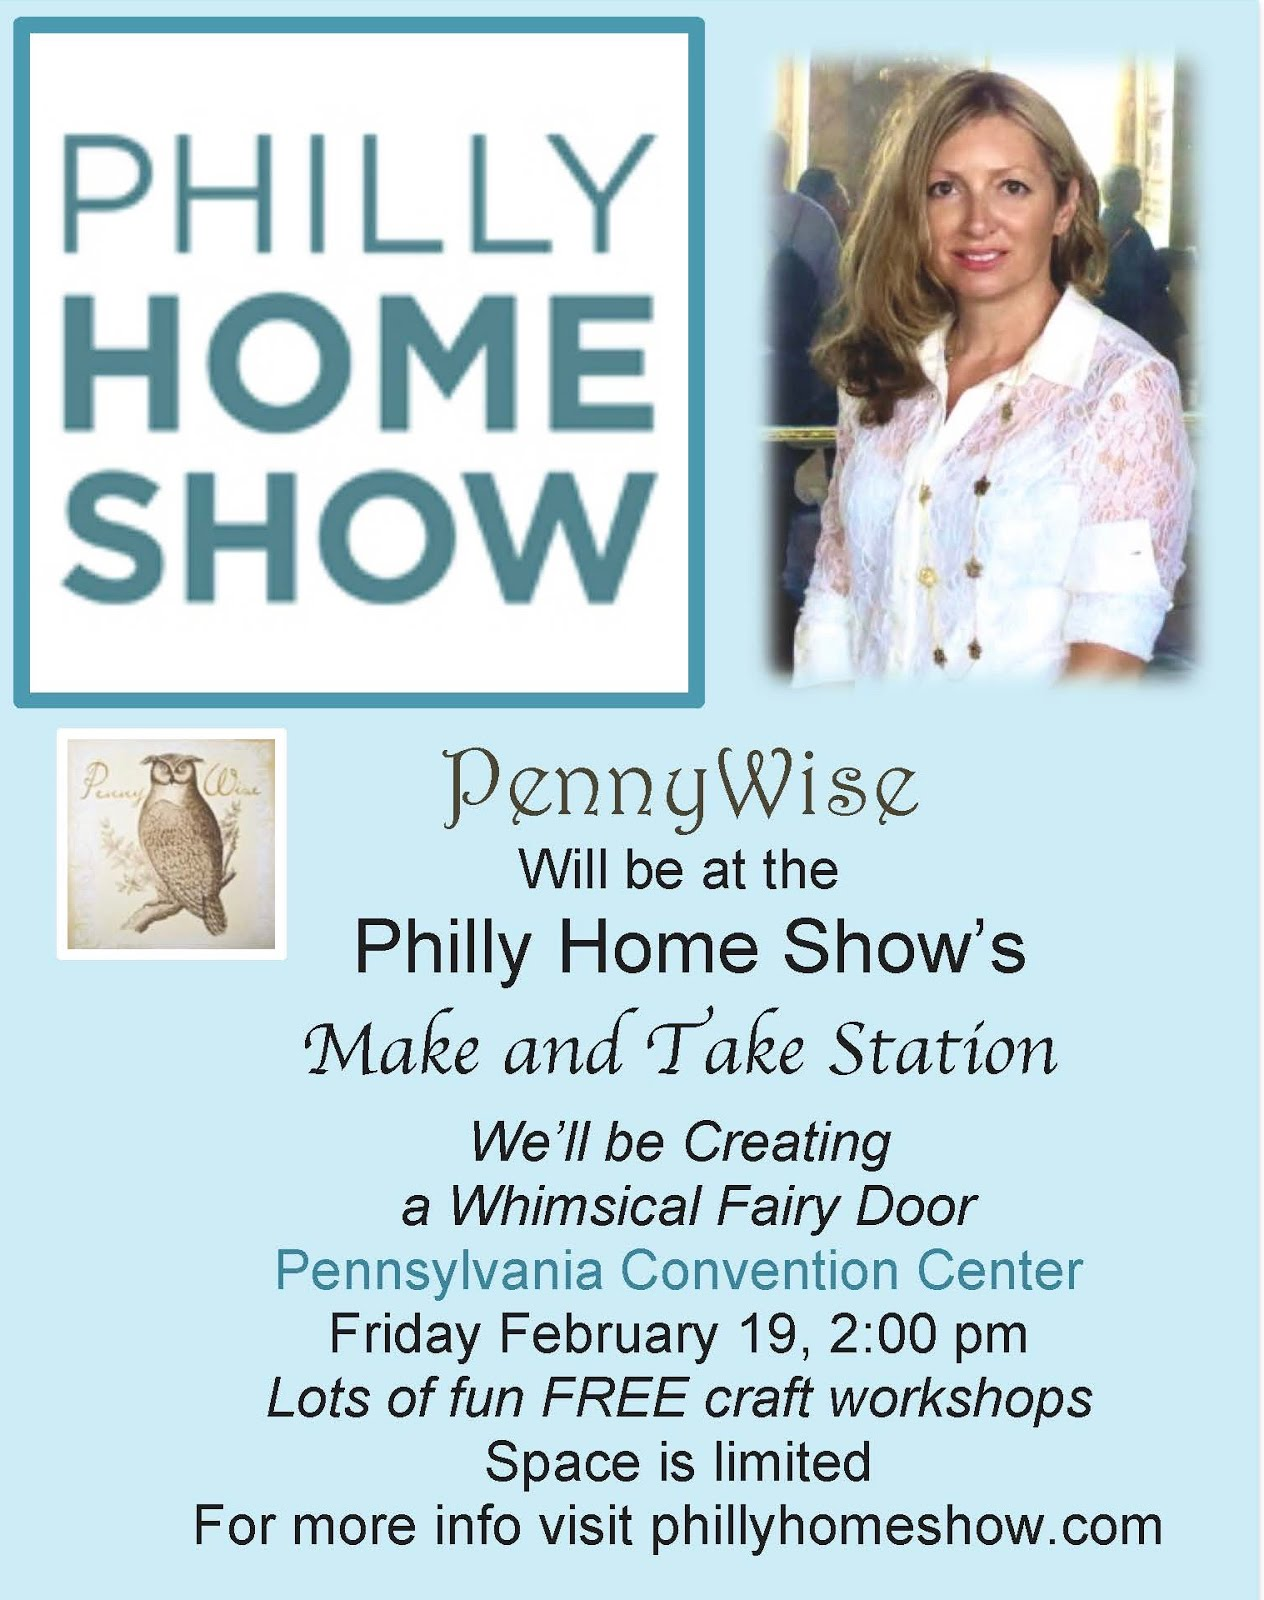 We'll be crafting at the Philly Home Show